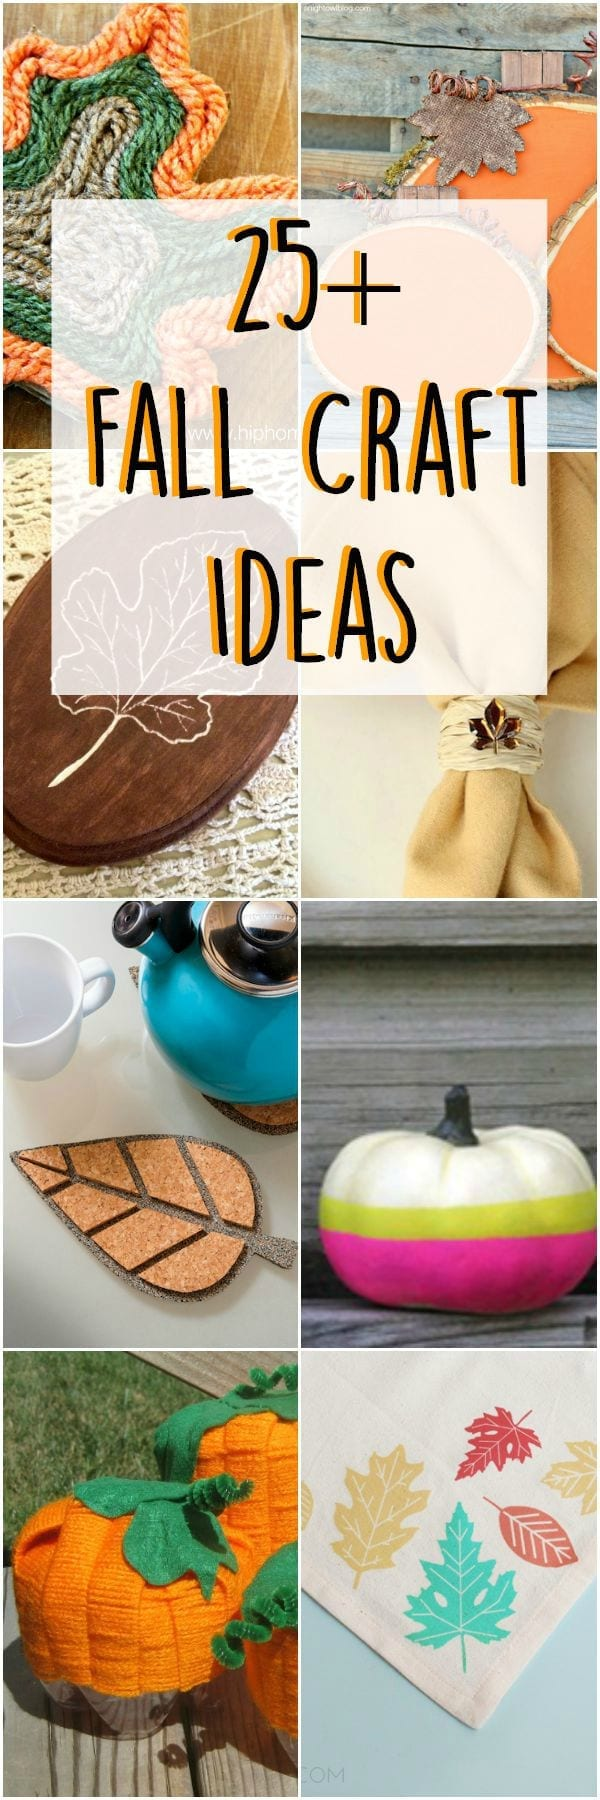 25+ Fall craft ideas